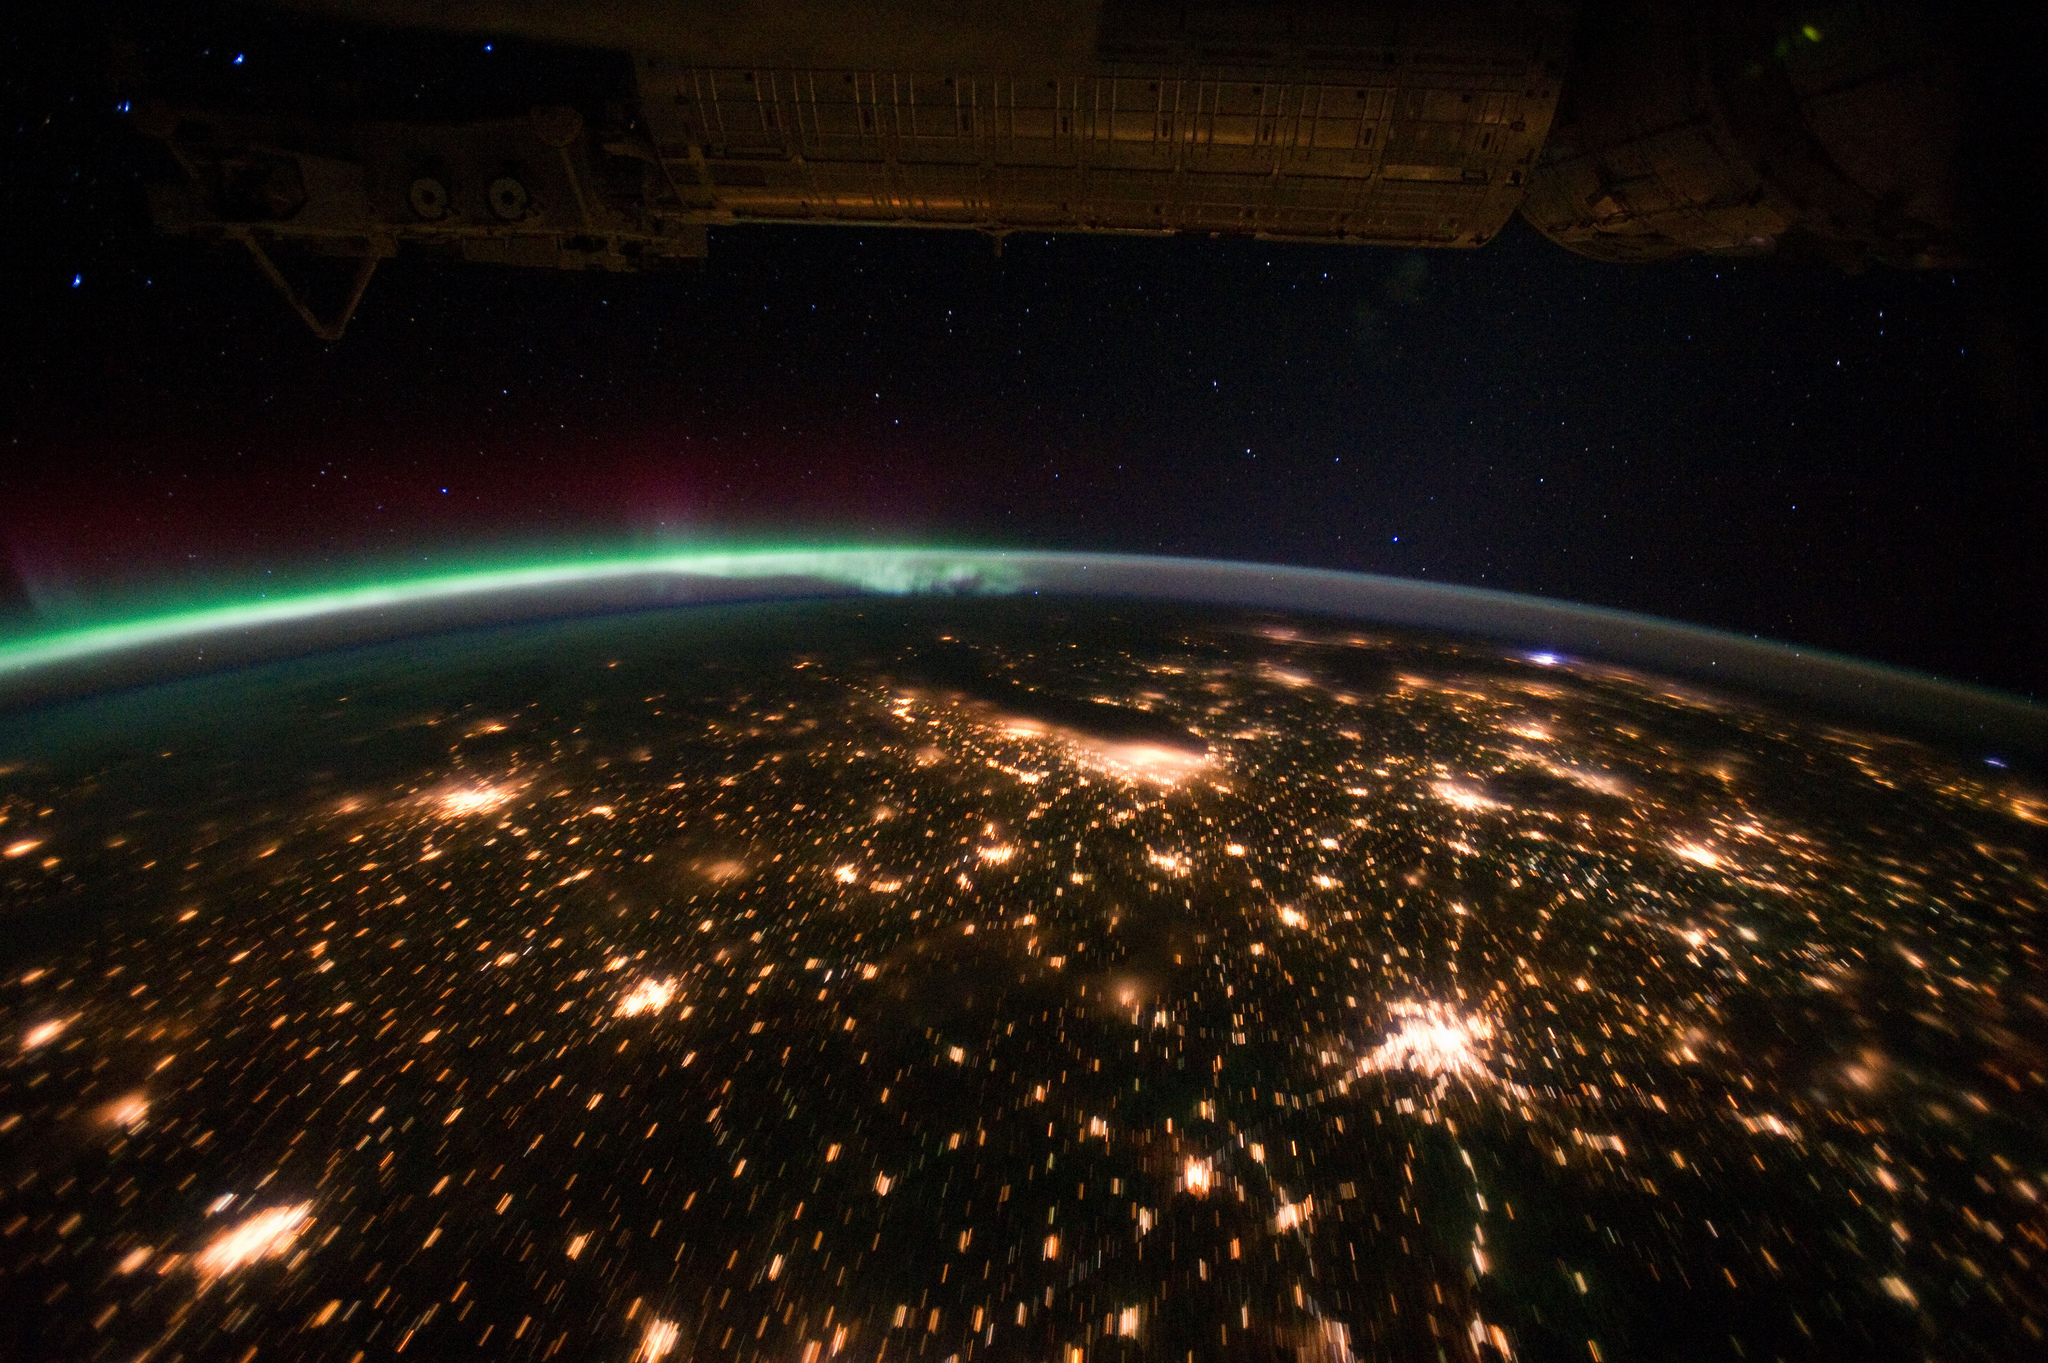 Auroras over Midwestern U.S. at Night